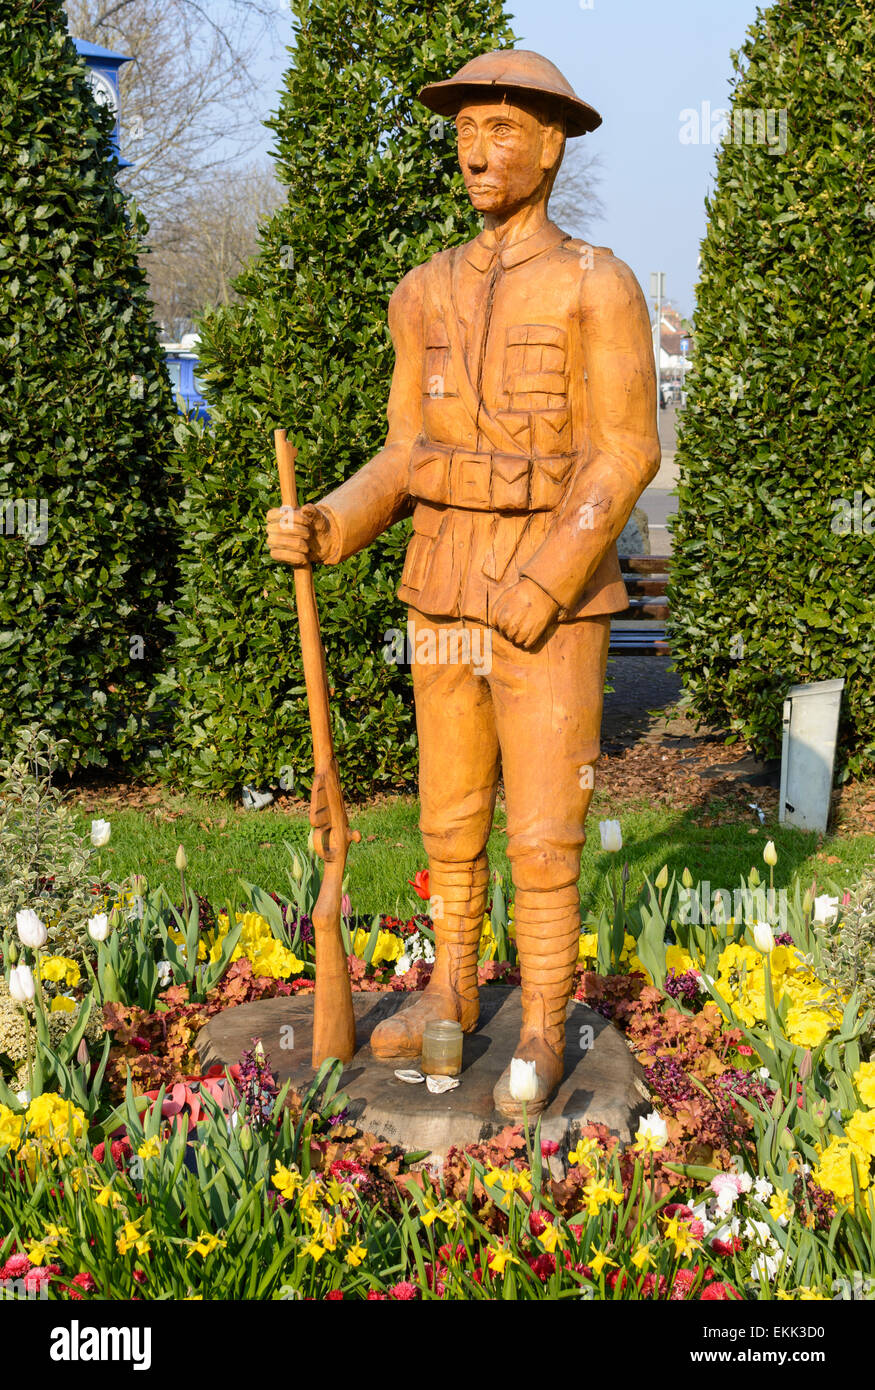 100 year WWI commemorative wooden carving of a soldier in Rustington, West Sussex, England, UK. - Stock Image